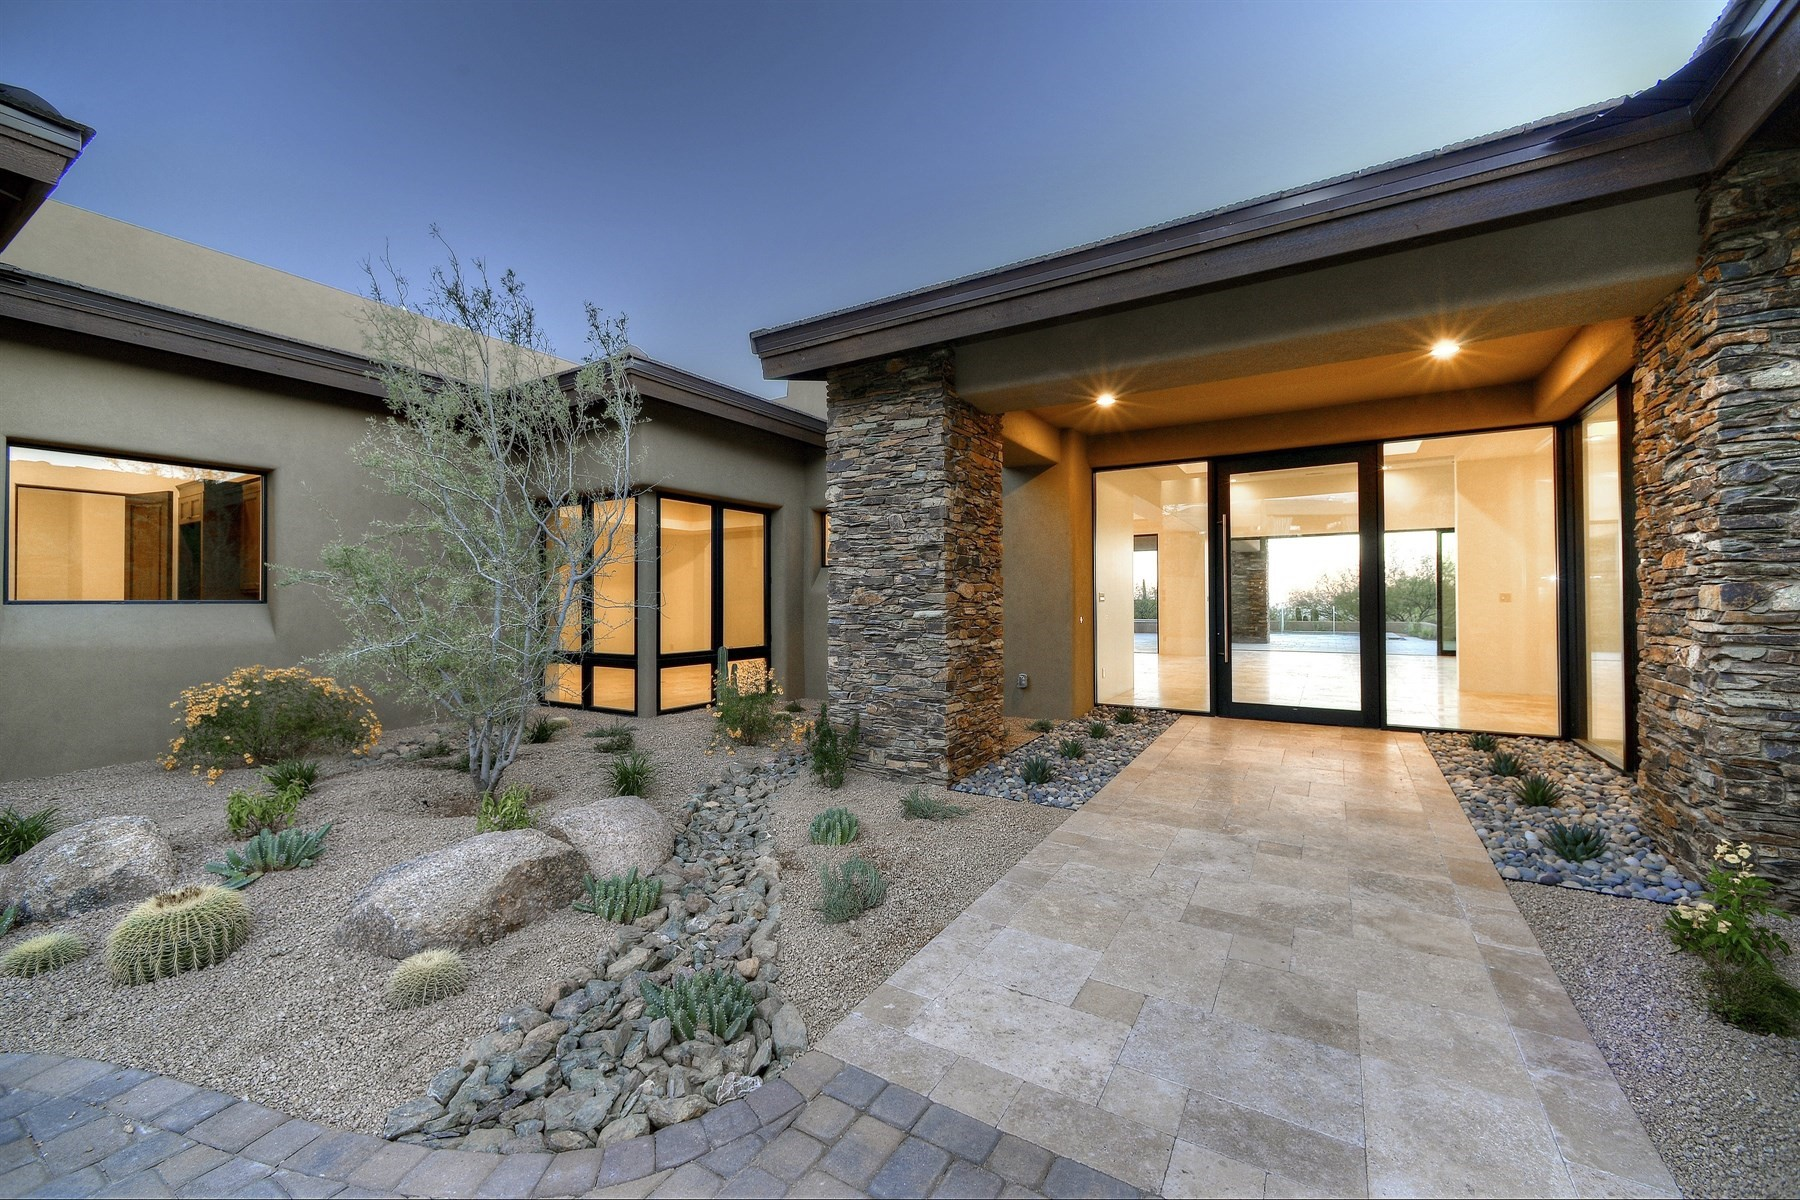 Casa Unifamiliar por un Venta en Southwest Contemporary with no interior steps and stone floors throughout 11077 E Honey Mesquite DR Scottsdale, Arizona, 85262 Estados Unidos